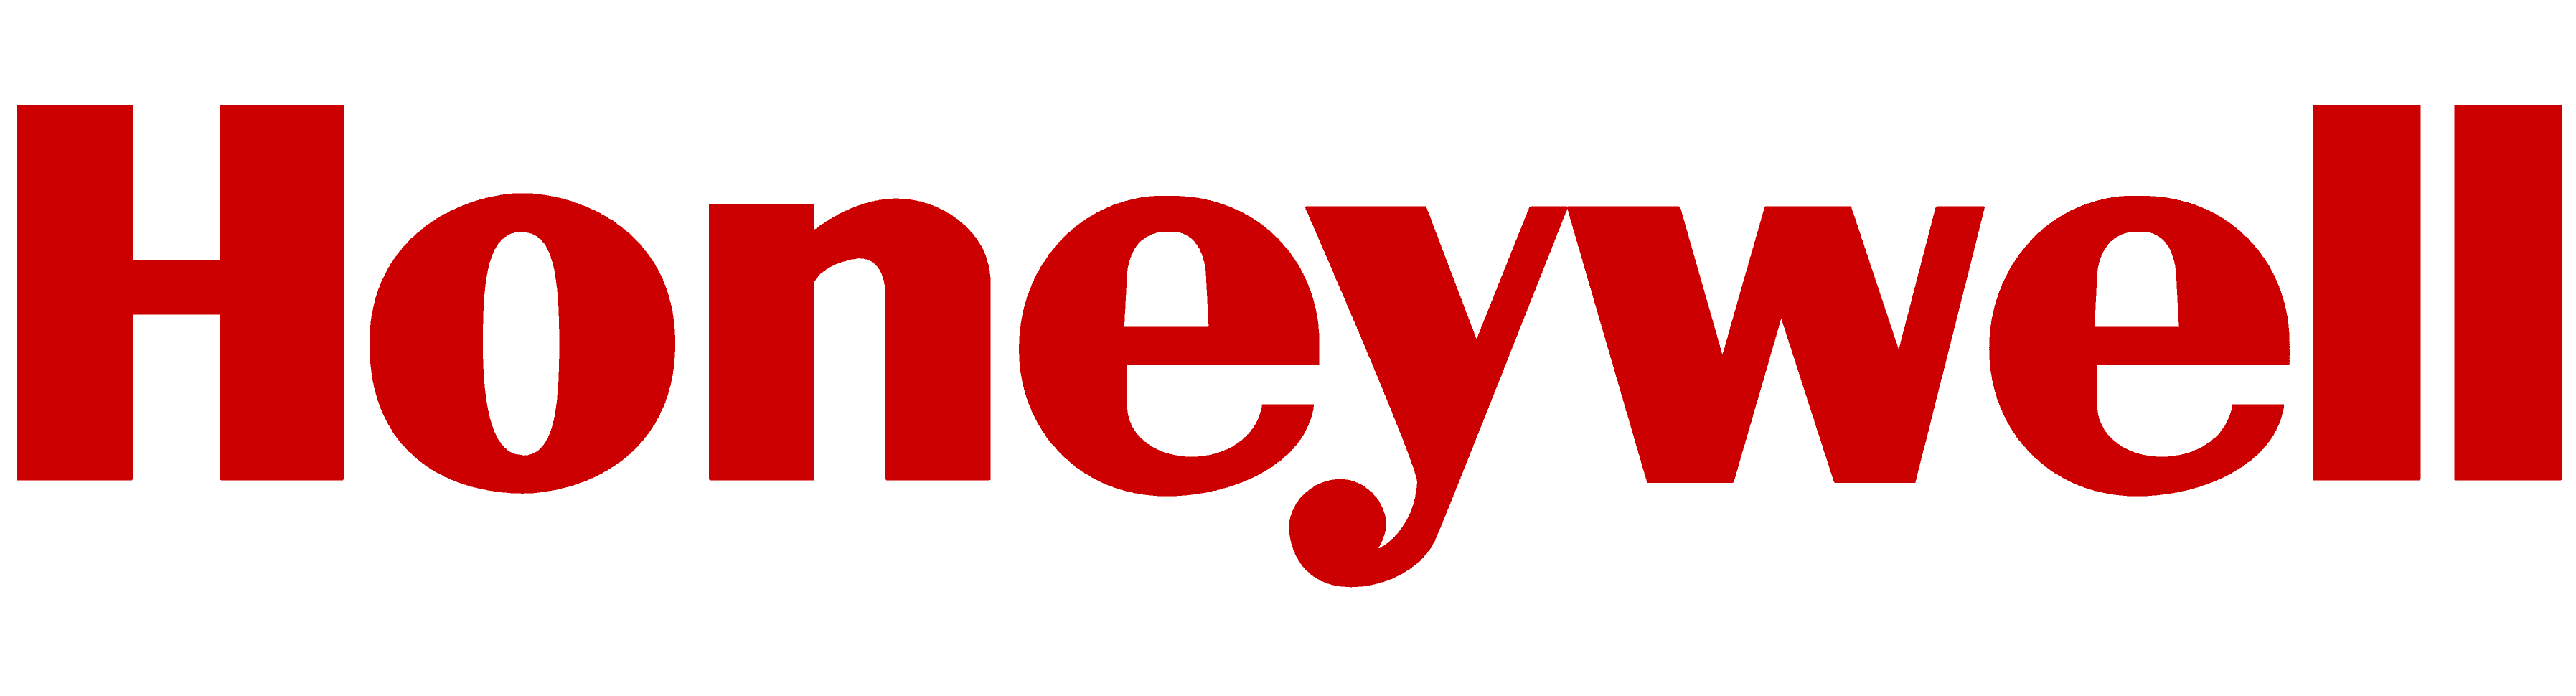 Honeywell_logo-1